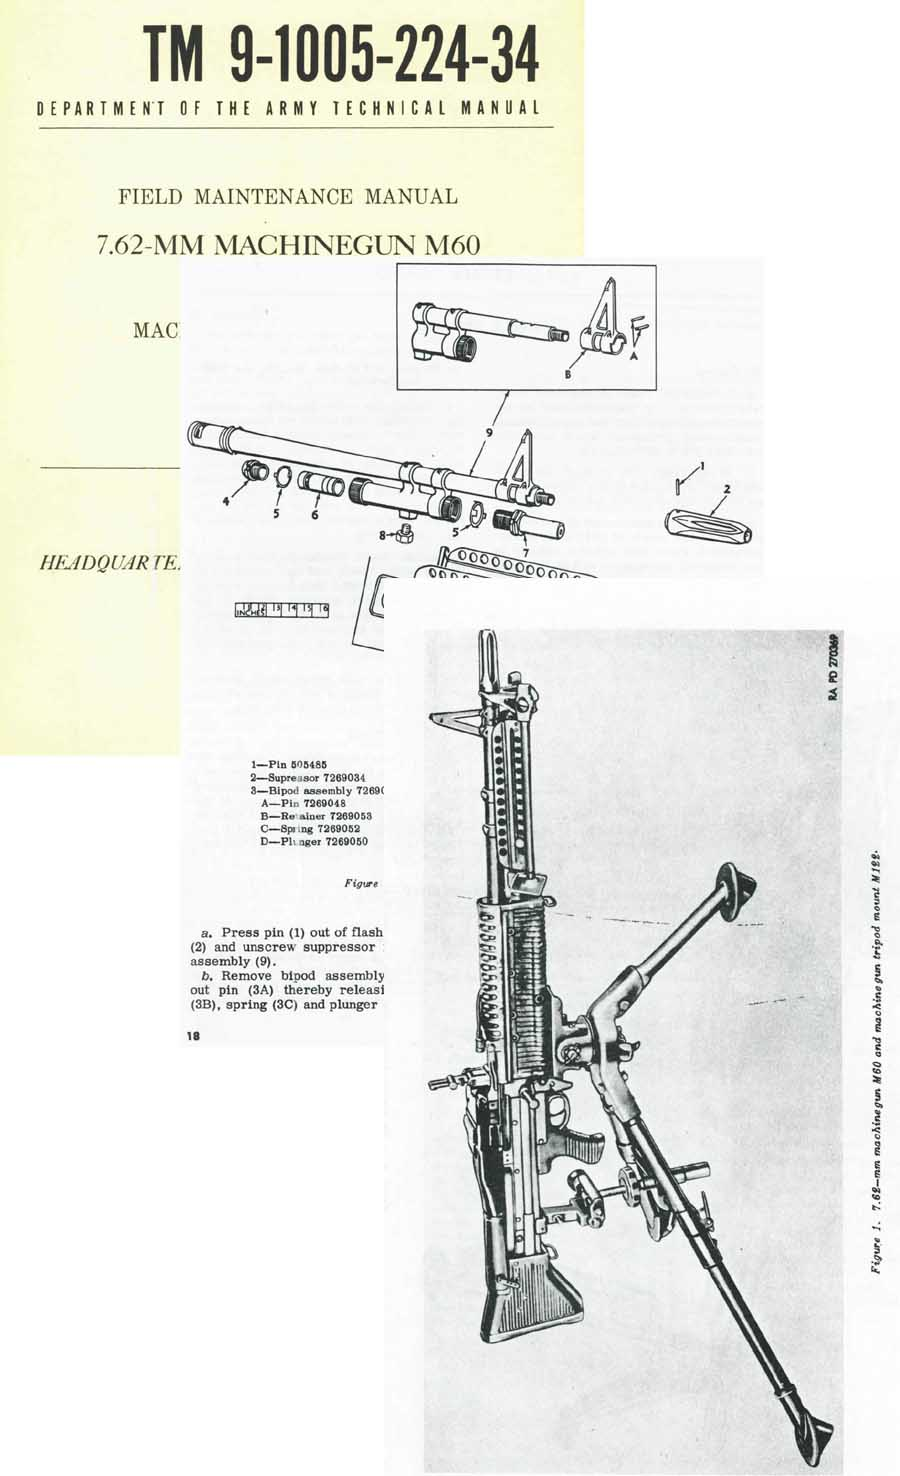 M60 1961 Field Maintenance Manual TM9-1005-224-34